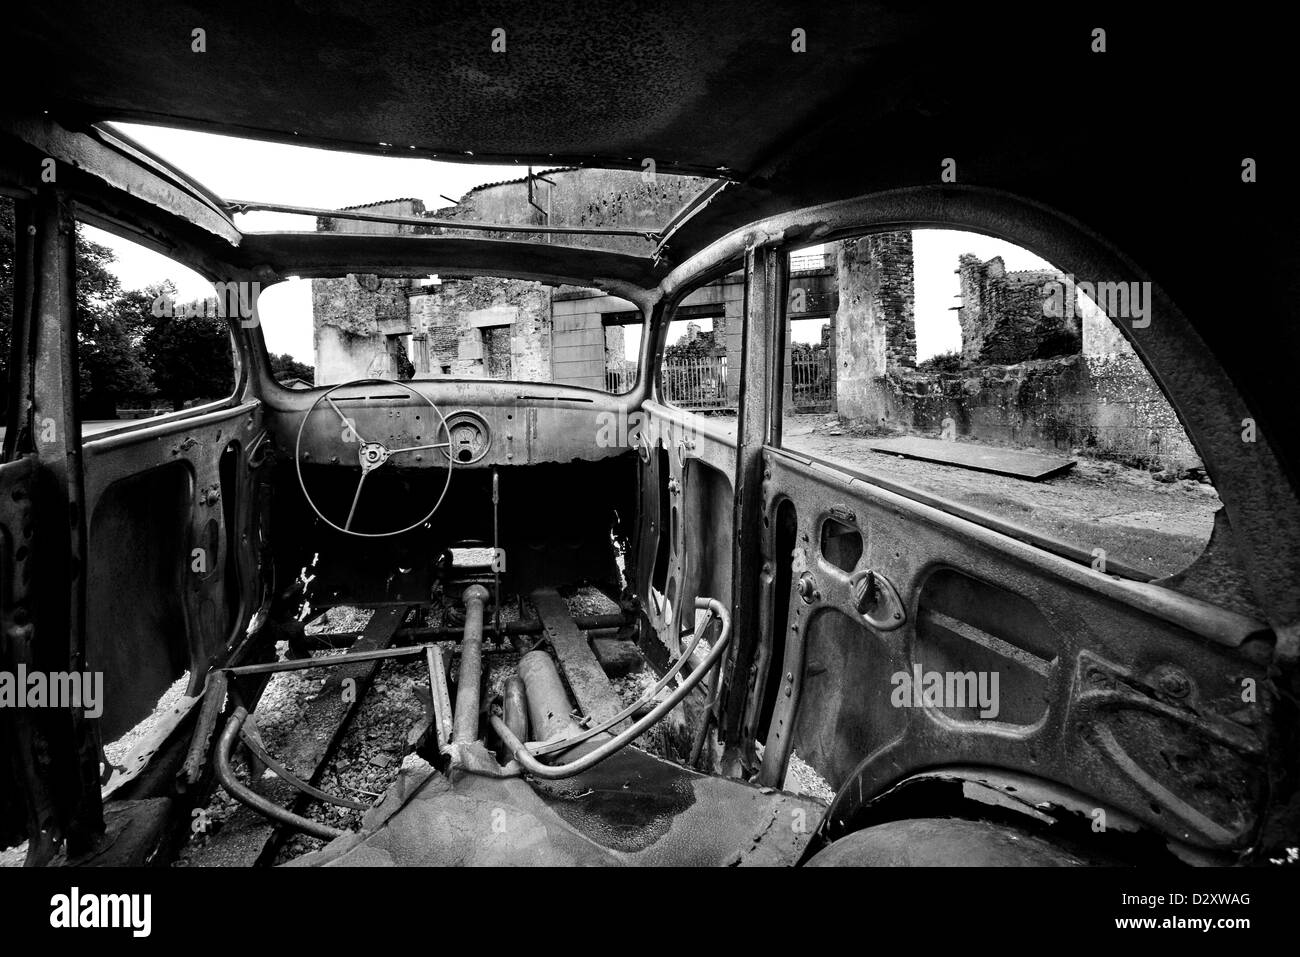 car bullet holes stock photos car bullet holes stock images alamy. Black Bedroom Furniture Sets. Home Design Ideas